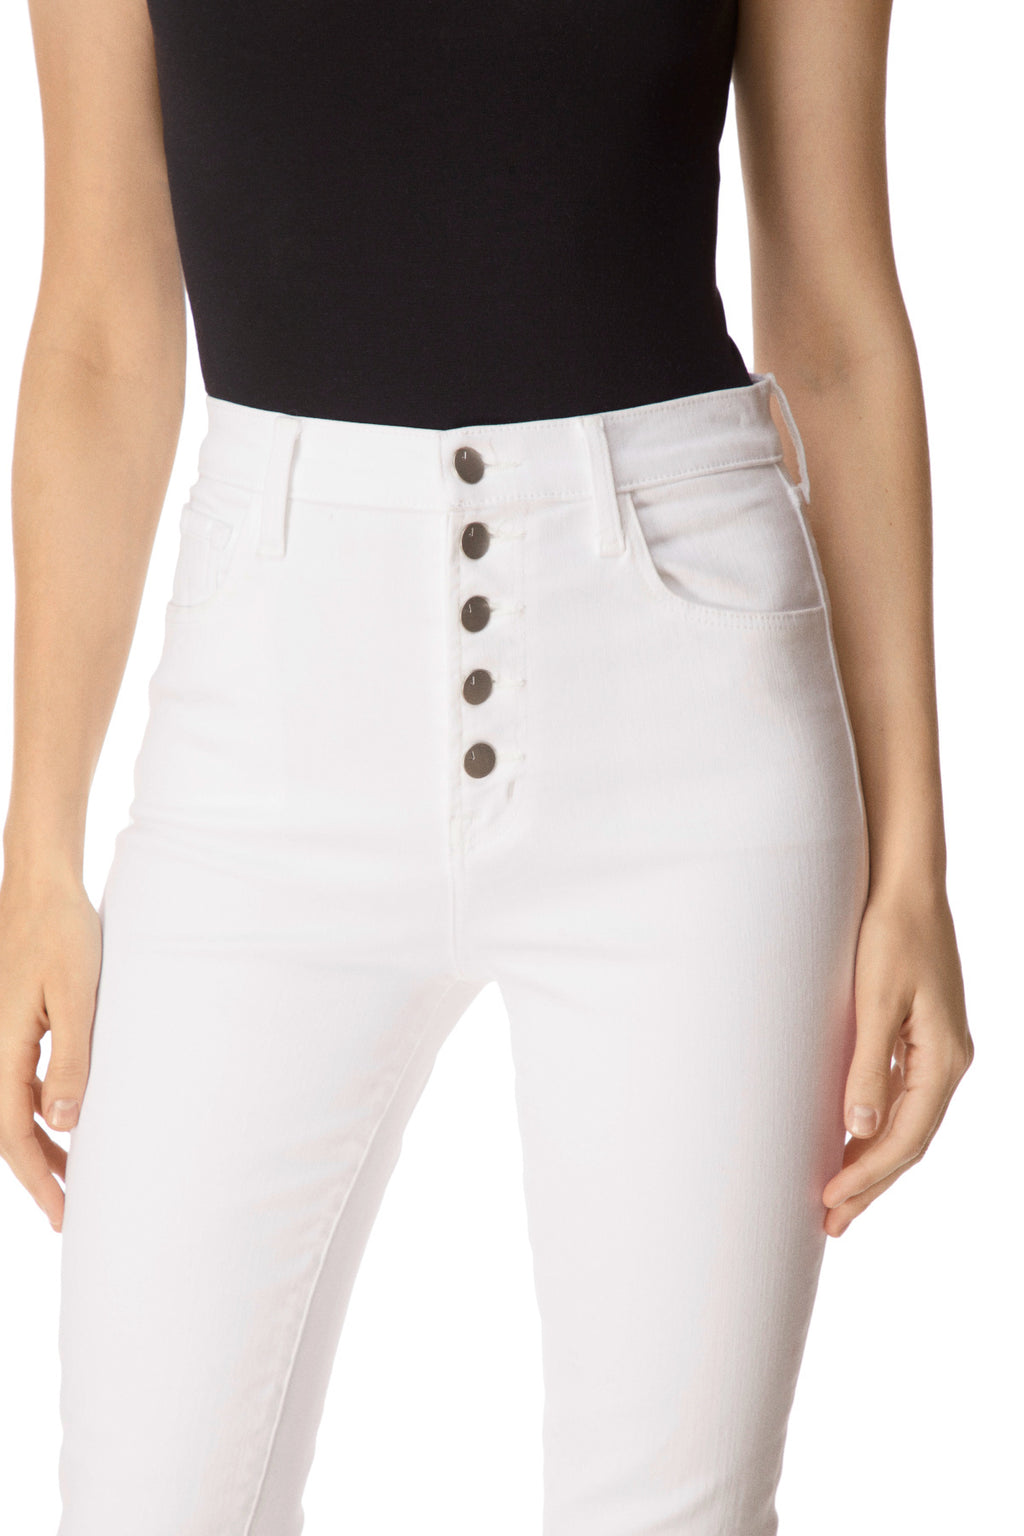 J BRAND - Lillie High Rise Cropped Skinny Pants online at PAYA boutique